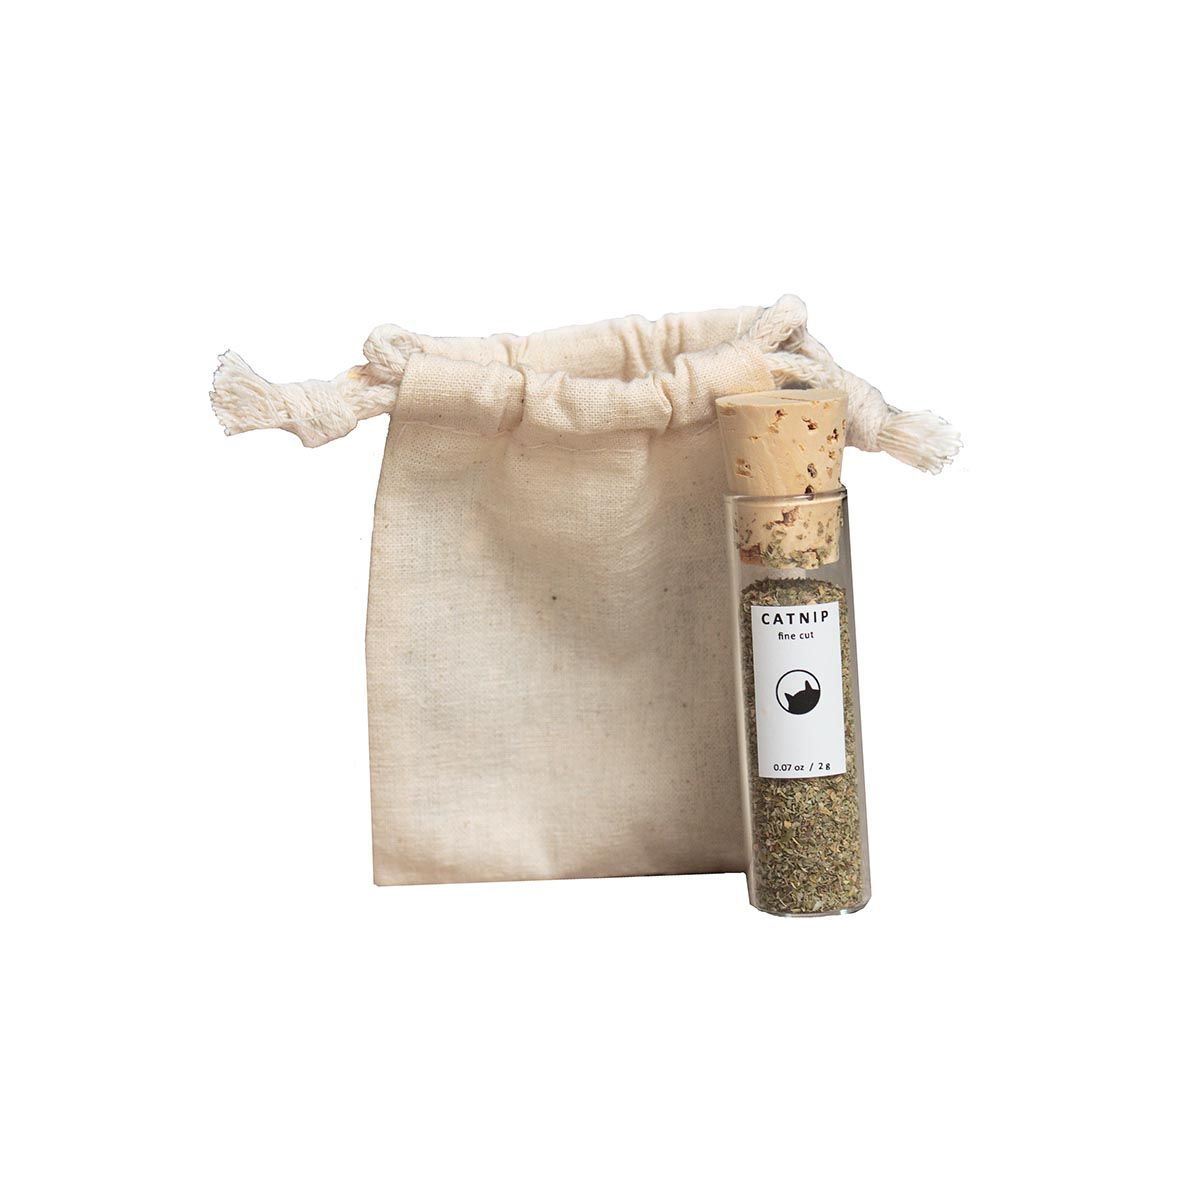 Catnip Vial and Pouch